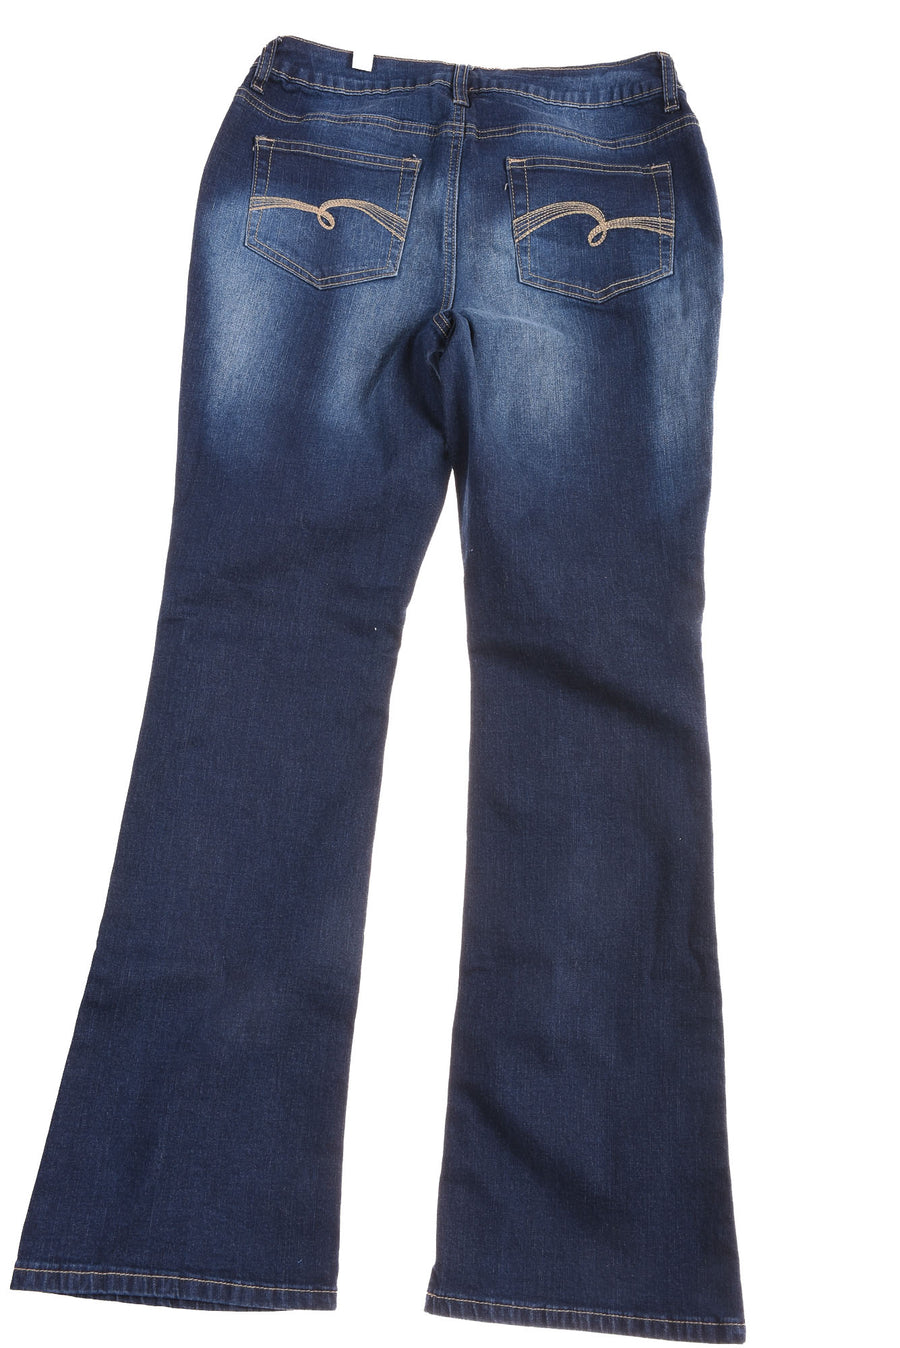 NEW Justice Girl's Jeans 16 Blue